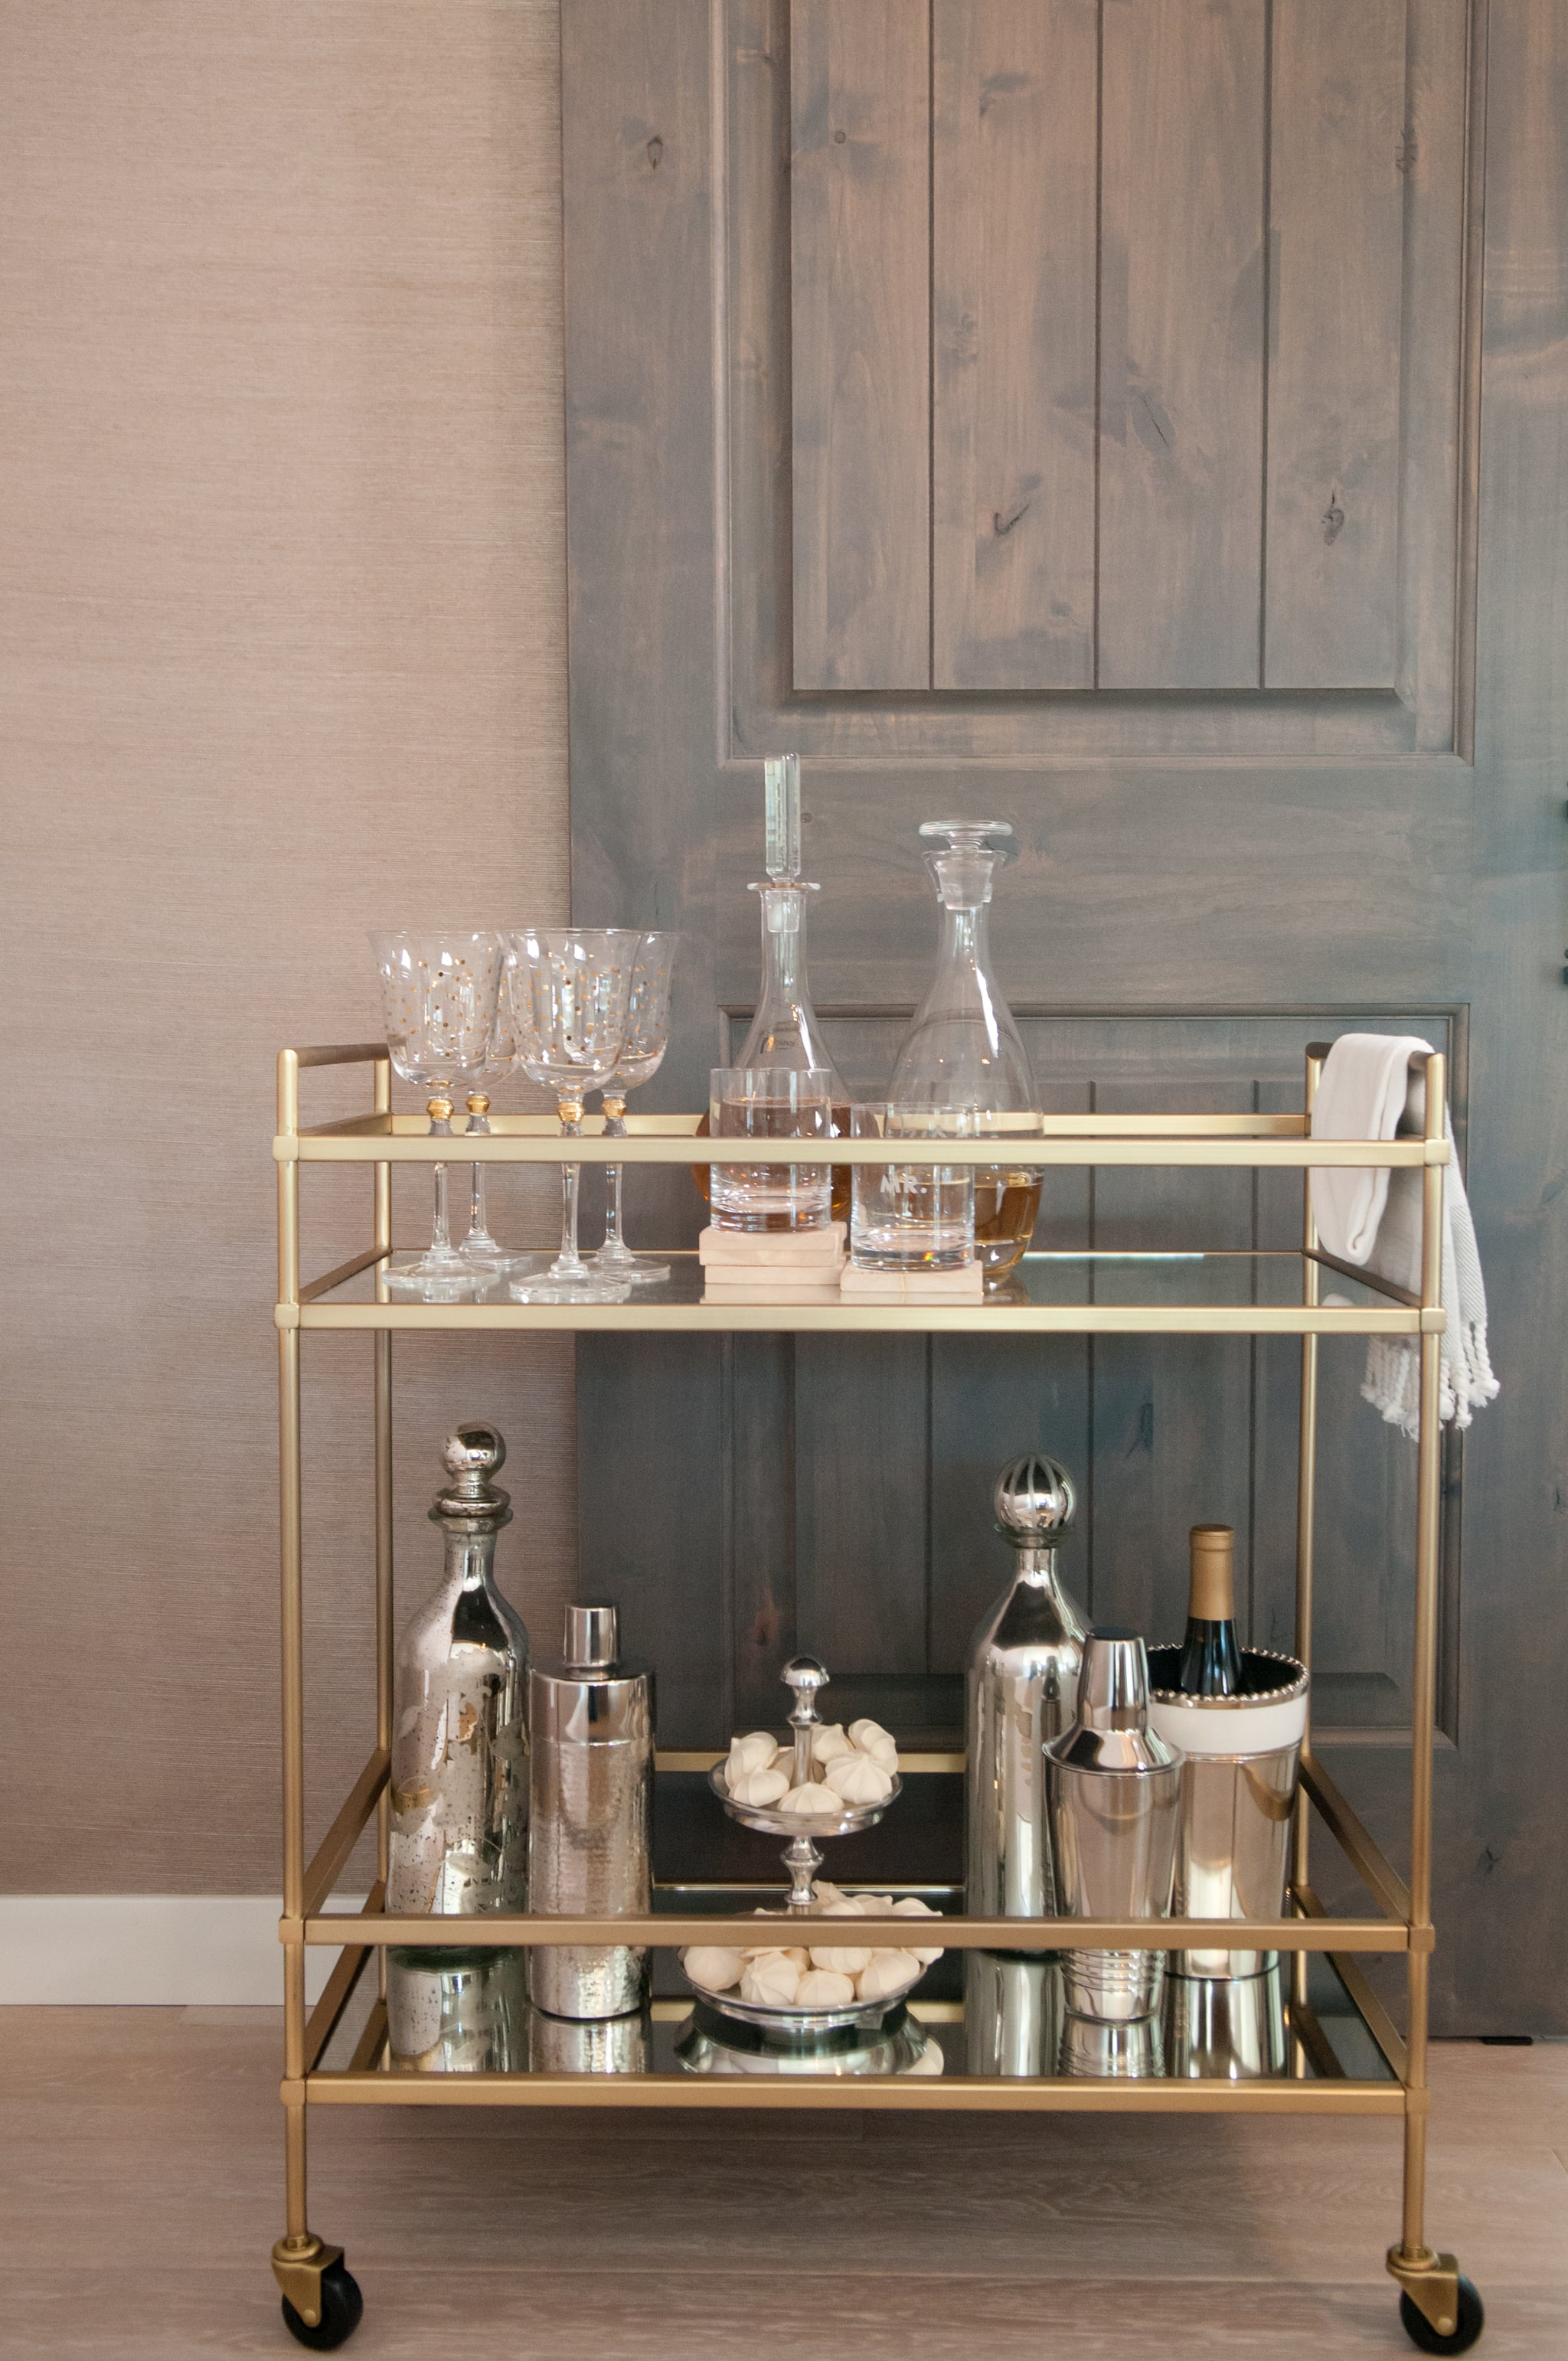 A Chic Bar Cart Like This One Full Of Glam Mixed Metallics Is A These Famous Newlyweds Know